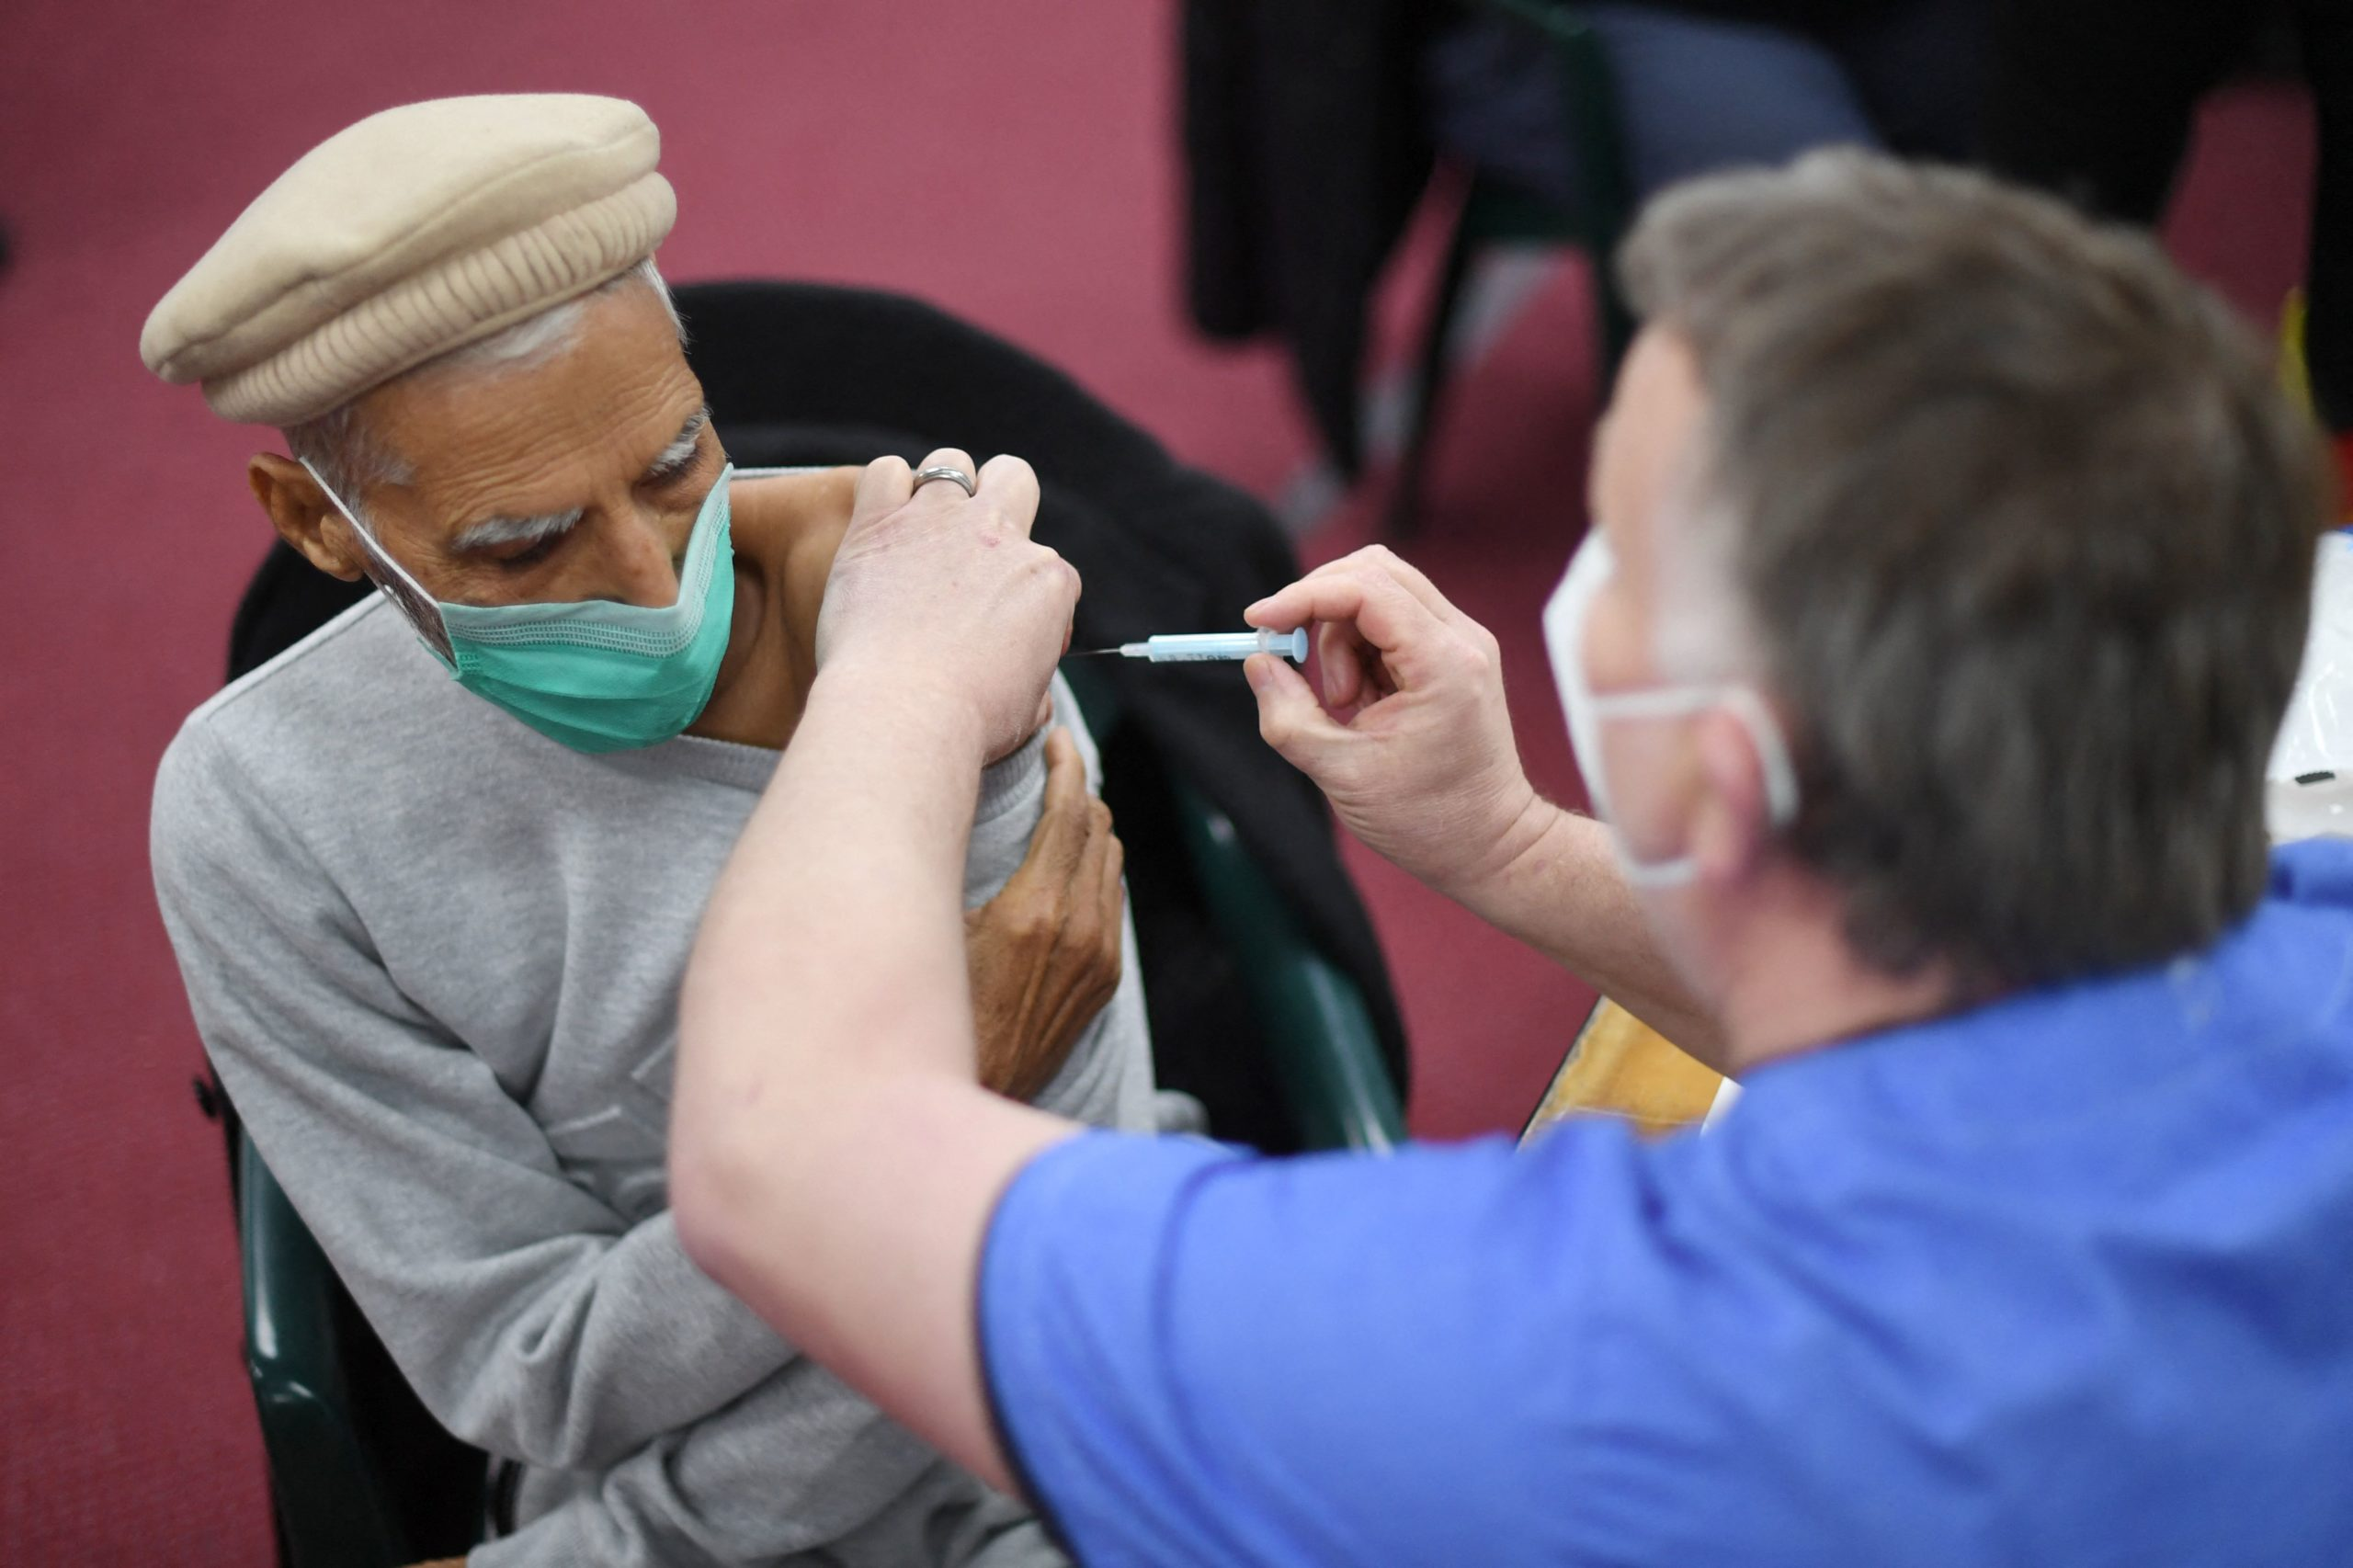 A health worker administers a dose of the AstraZeneca vaccine at a coronavirus vaccination location in London on Tuesday. (Daniel Leal-Olivas/AFP via Getty Images)